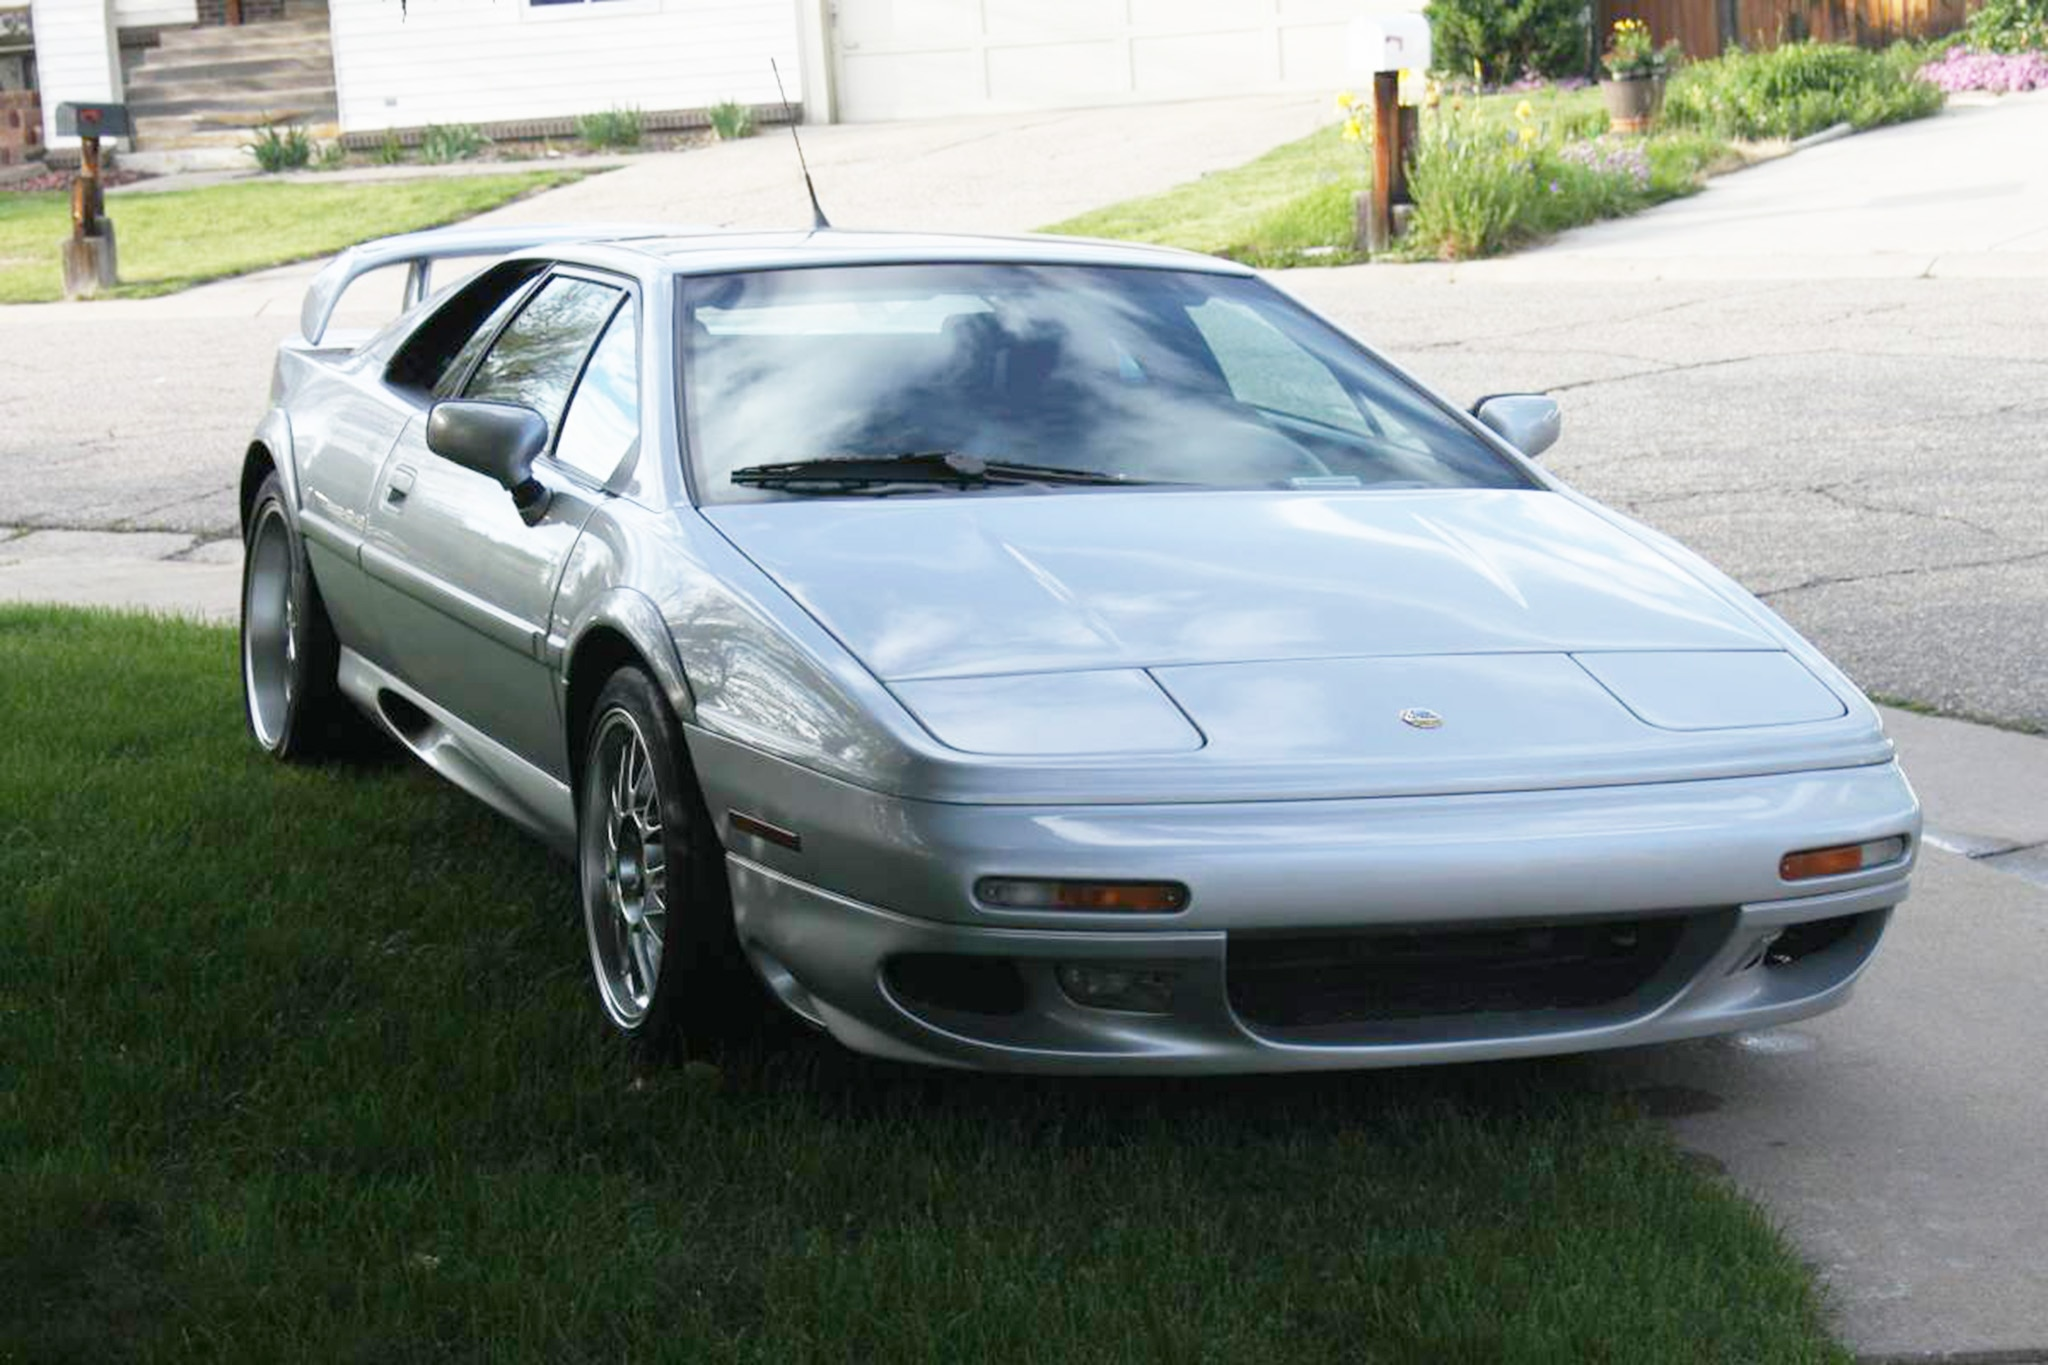 Just Listed: 2002 Lotus Esprit V8 25th Anniversary Edition | Automobile Magazine